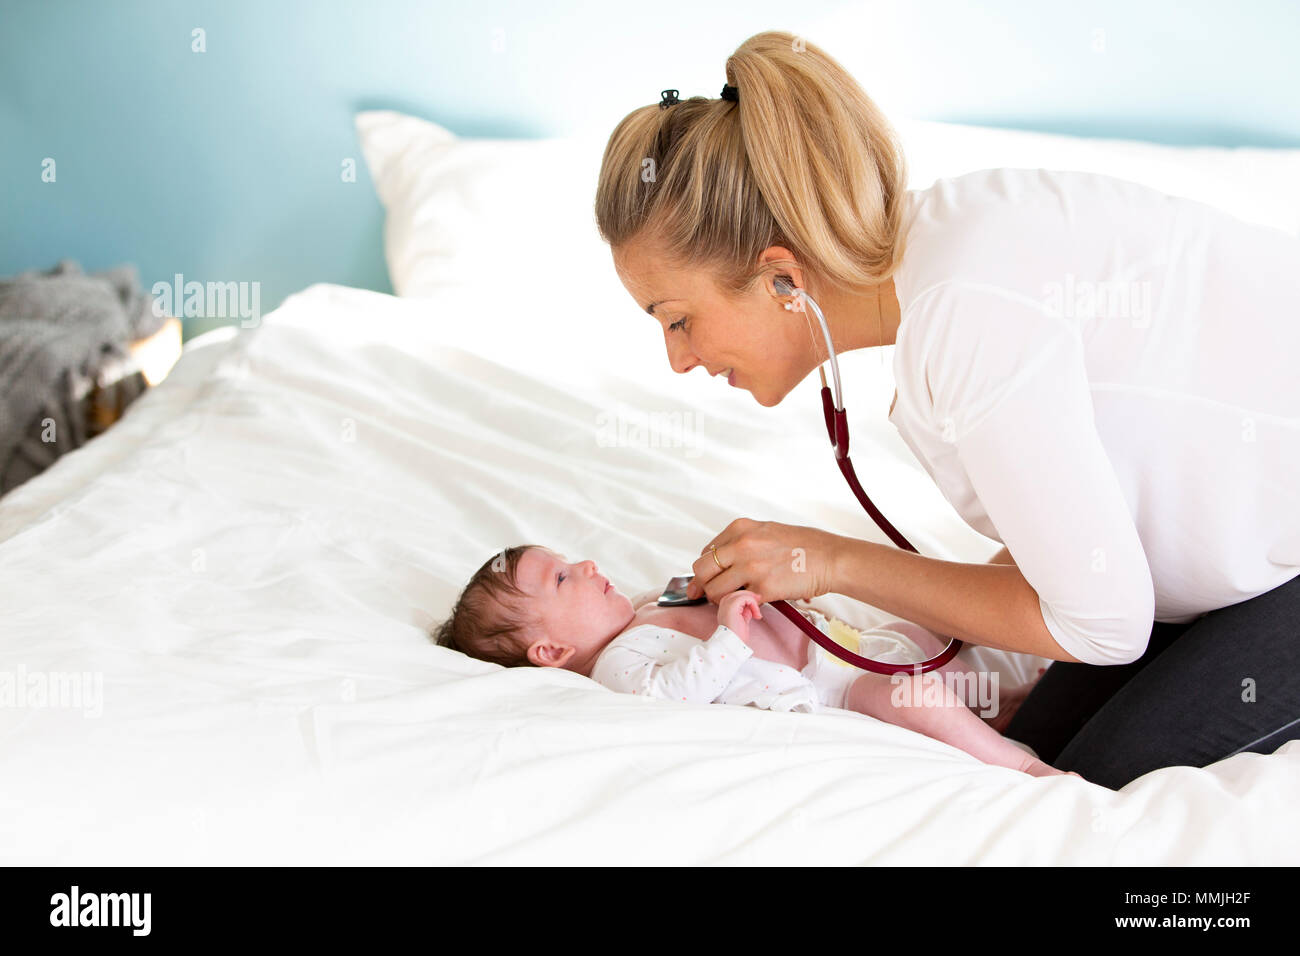 Pediatrician examines baby with stethoscope at home - Stock Image